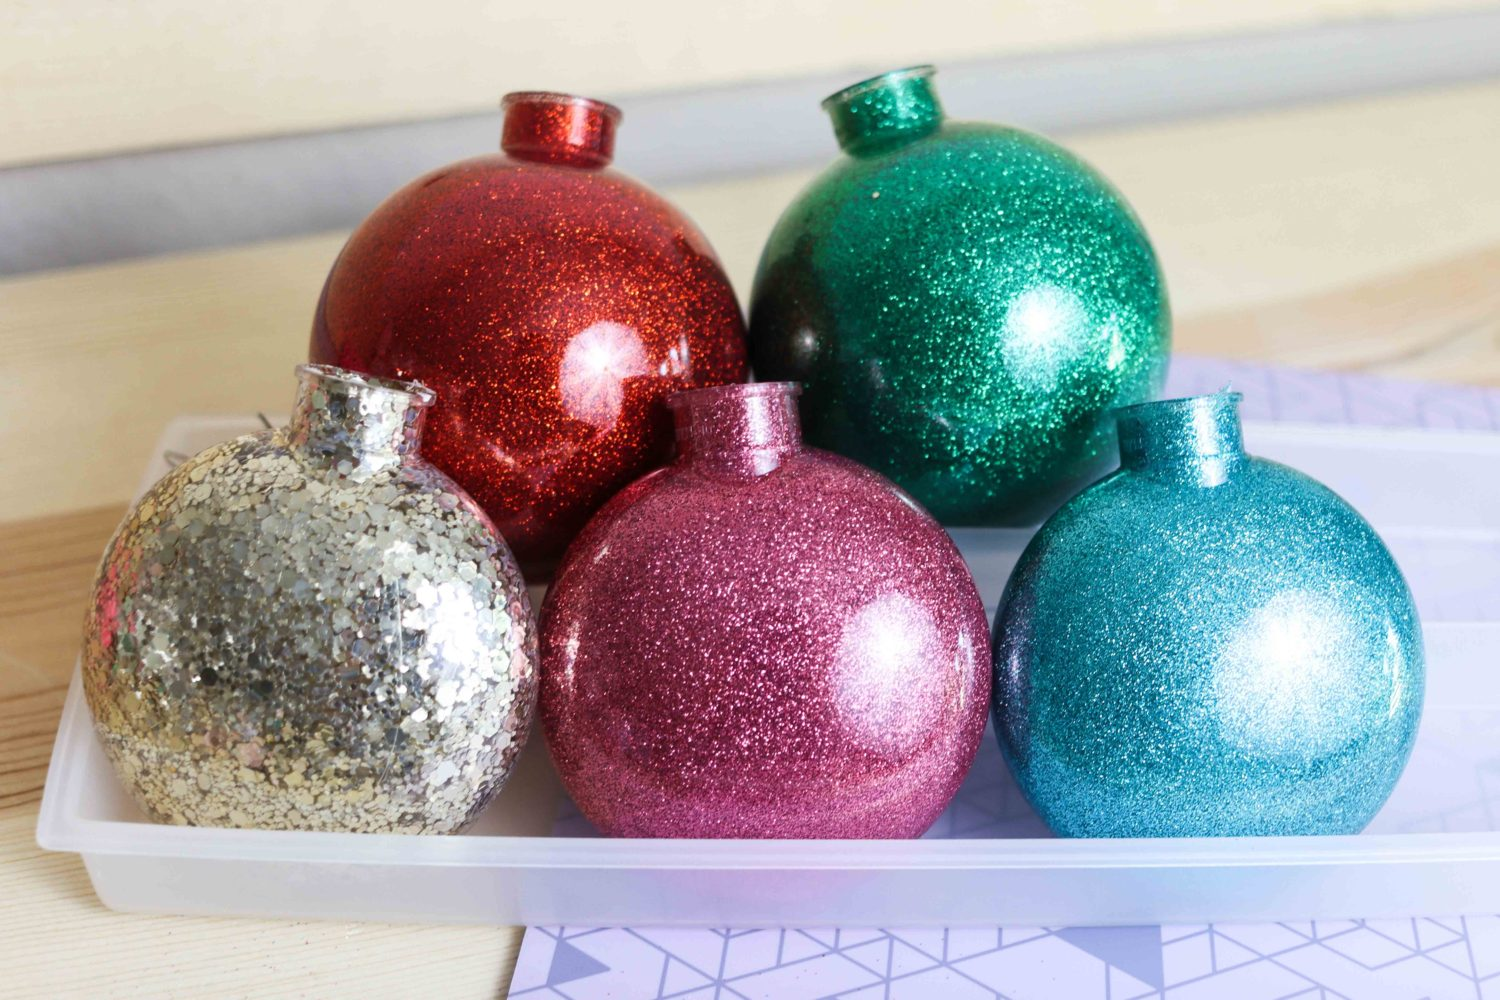 Multiple Christmas Ornament made with polycrylic and glitter